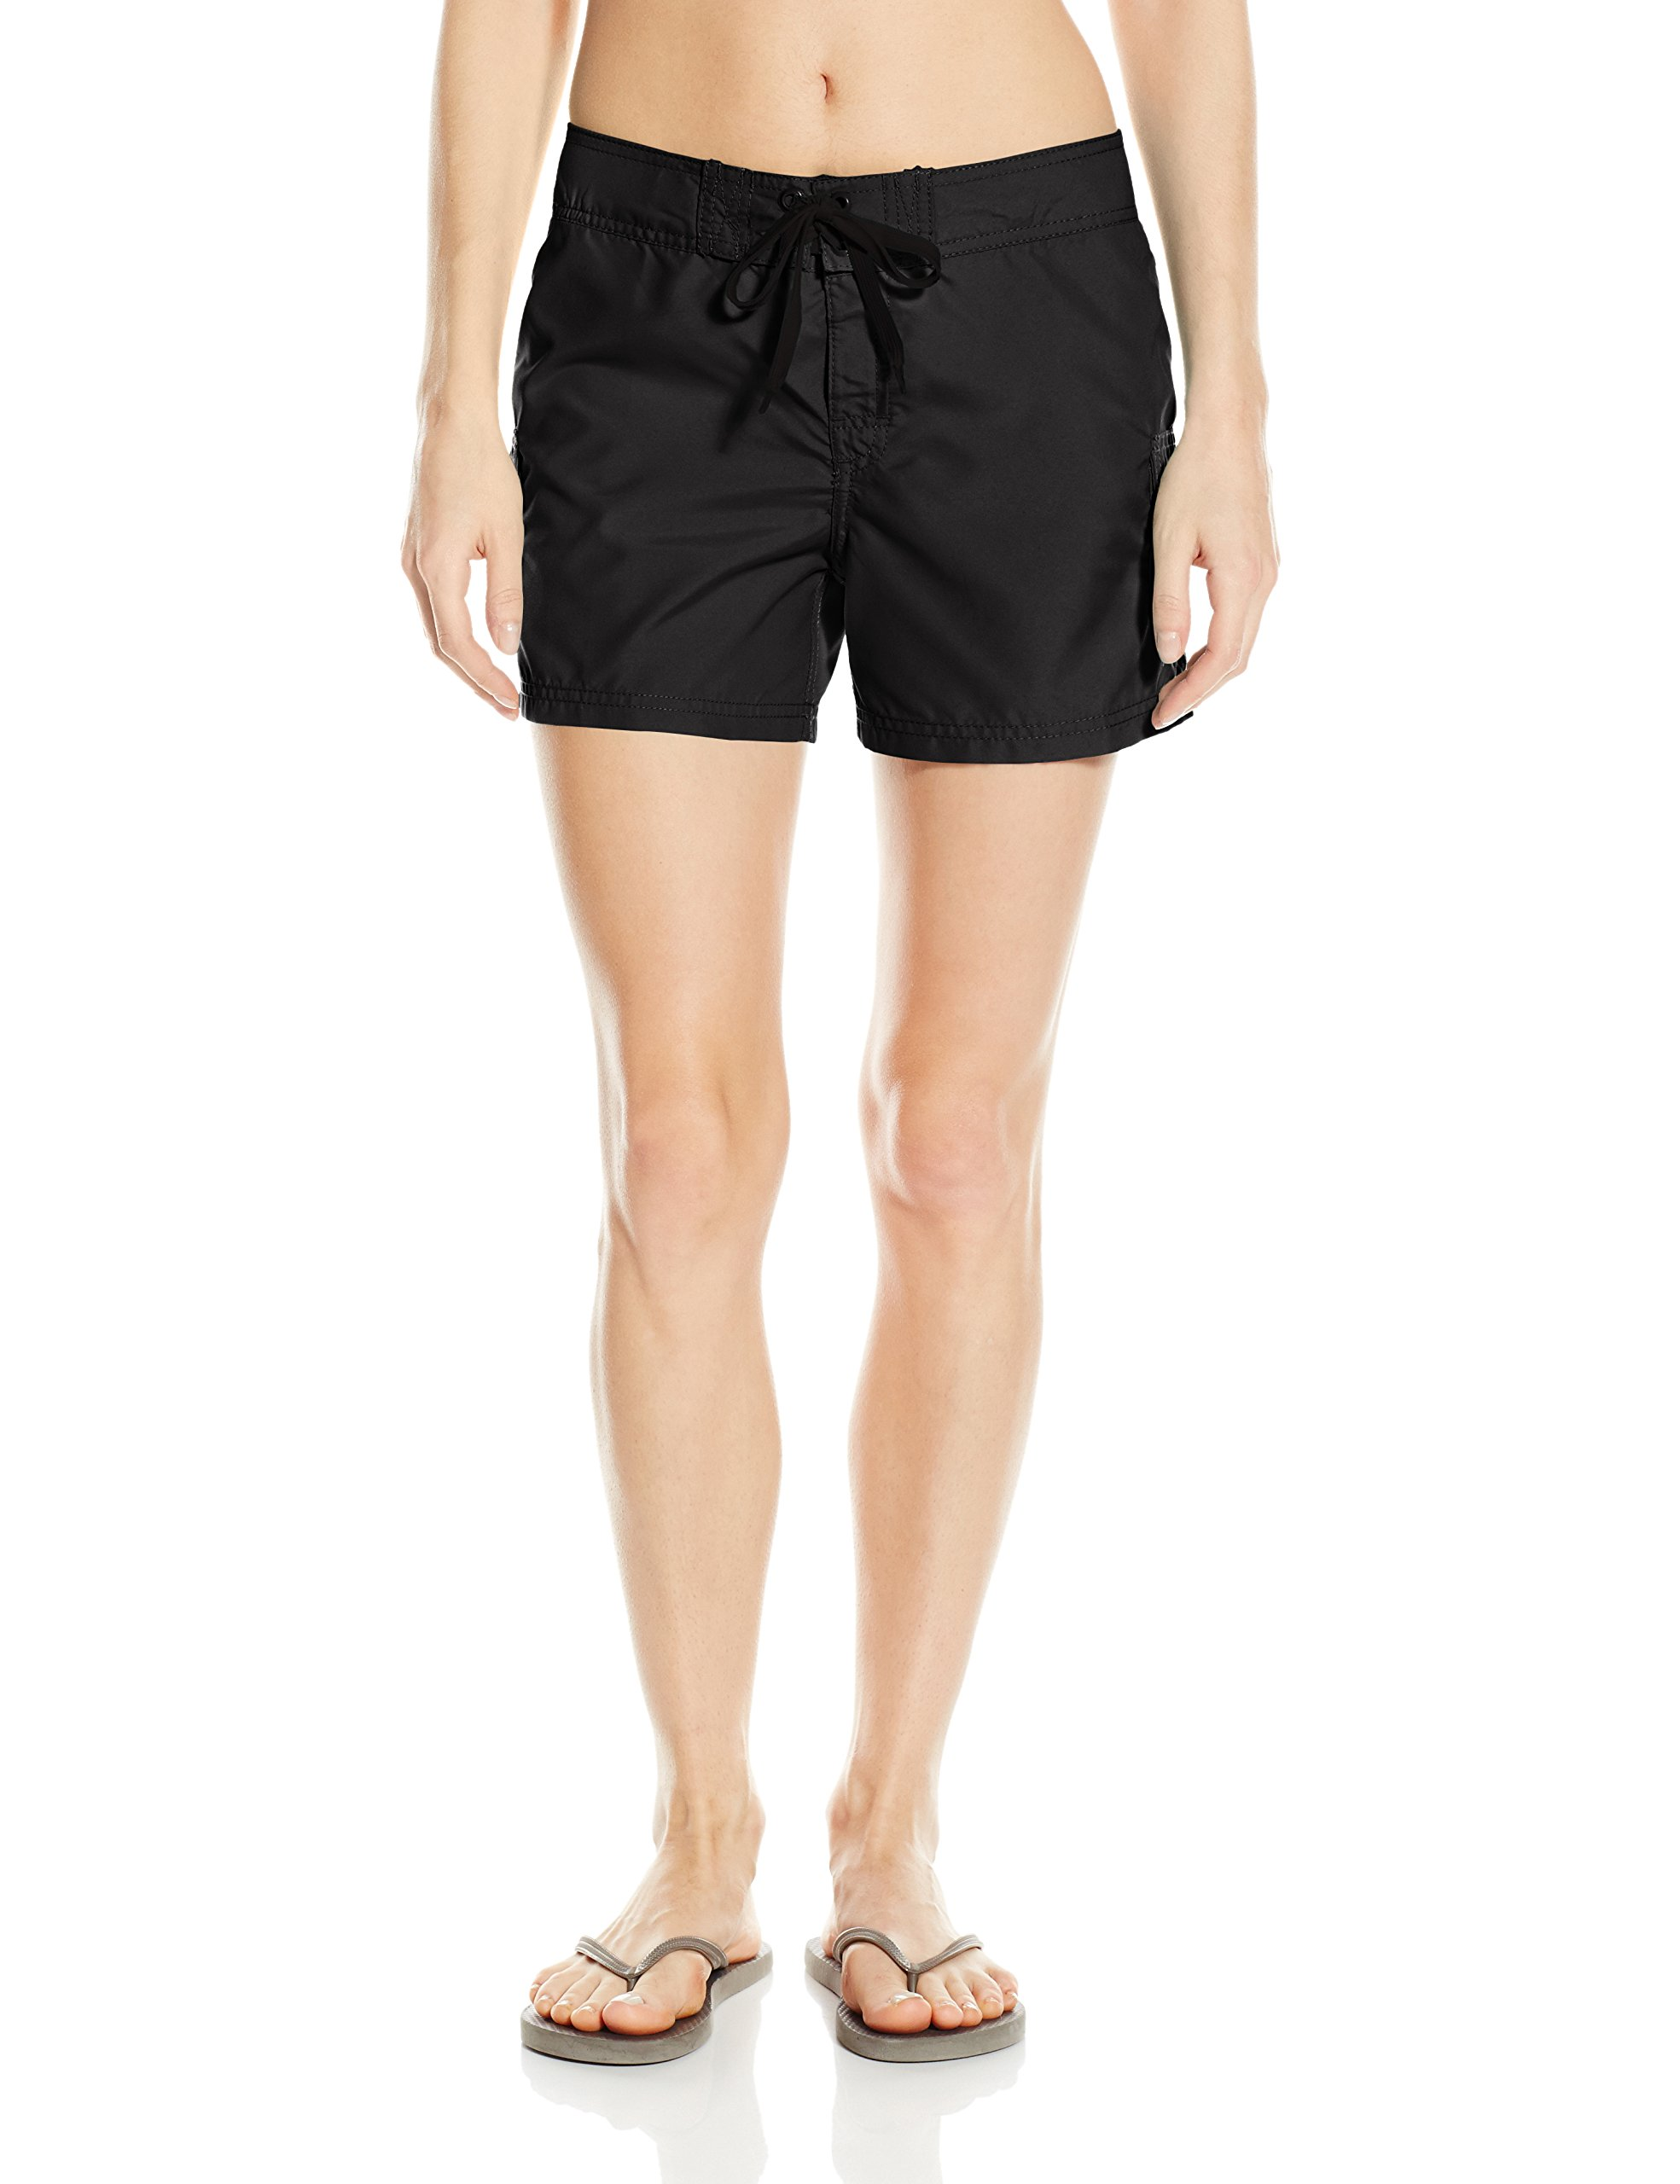 Kanu Surf Women's Breeze Board Shorts, Black, 12